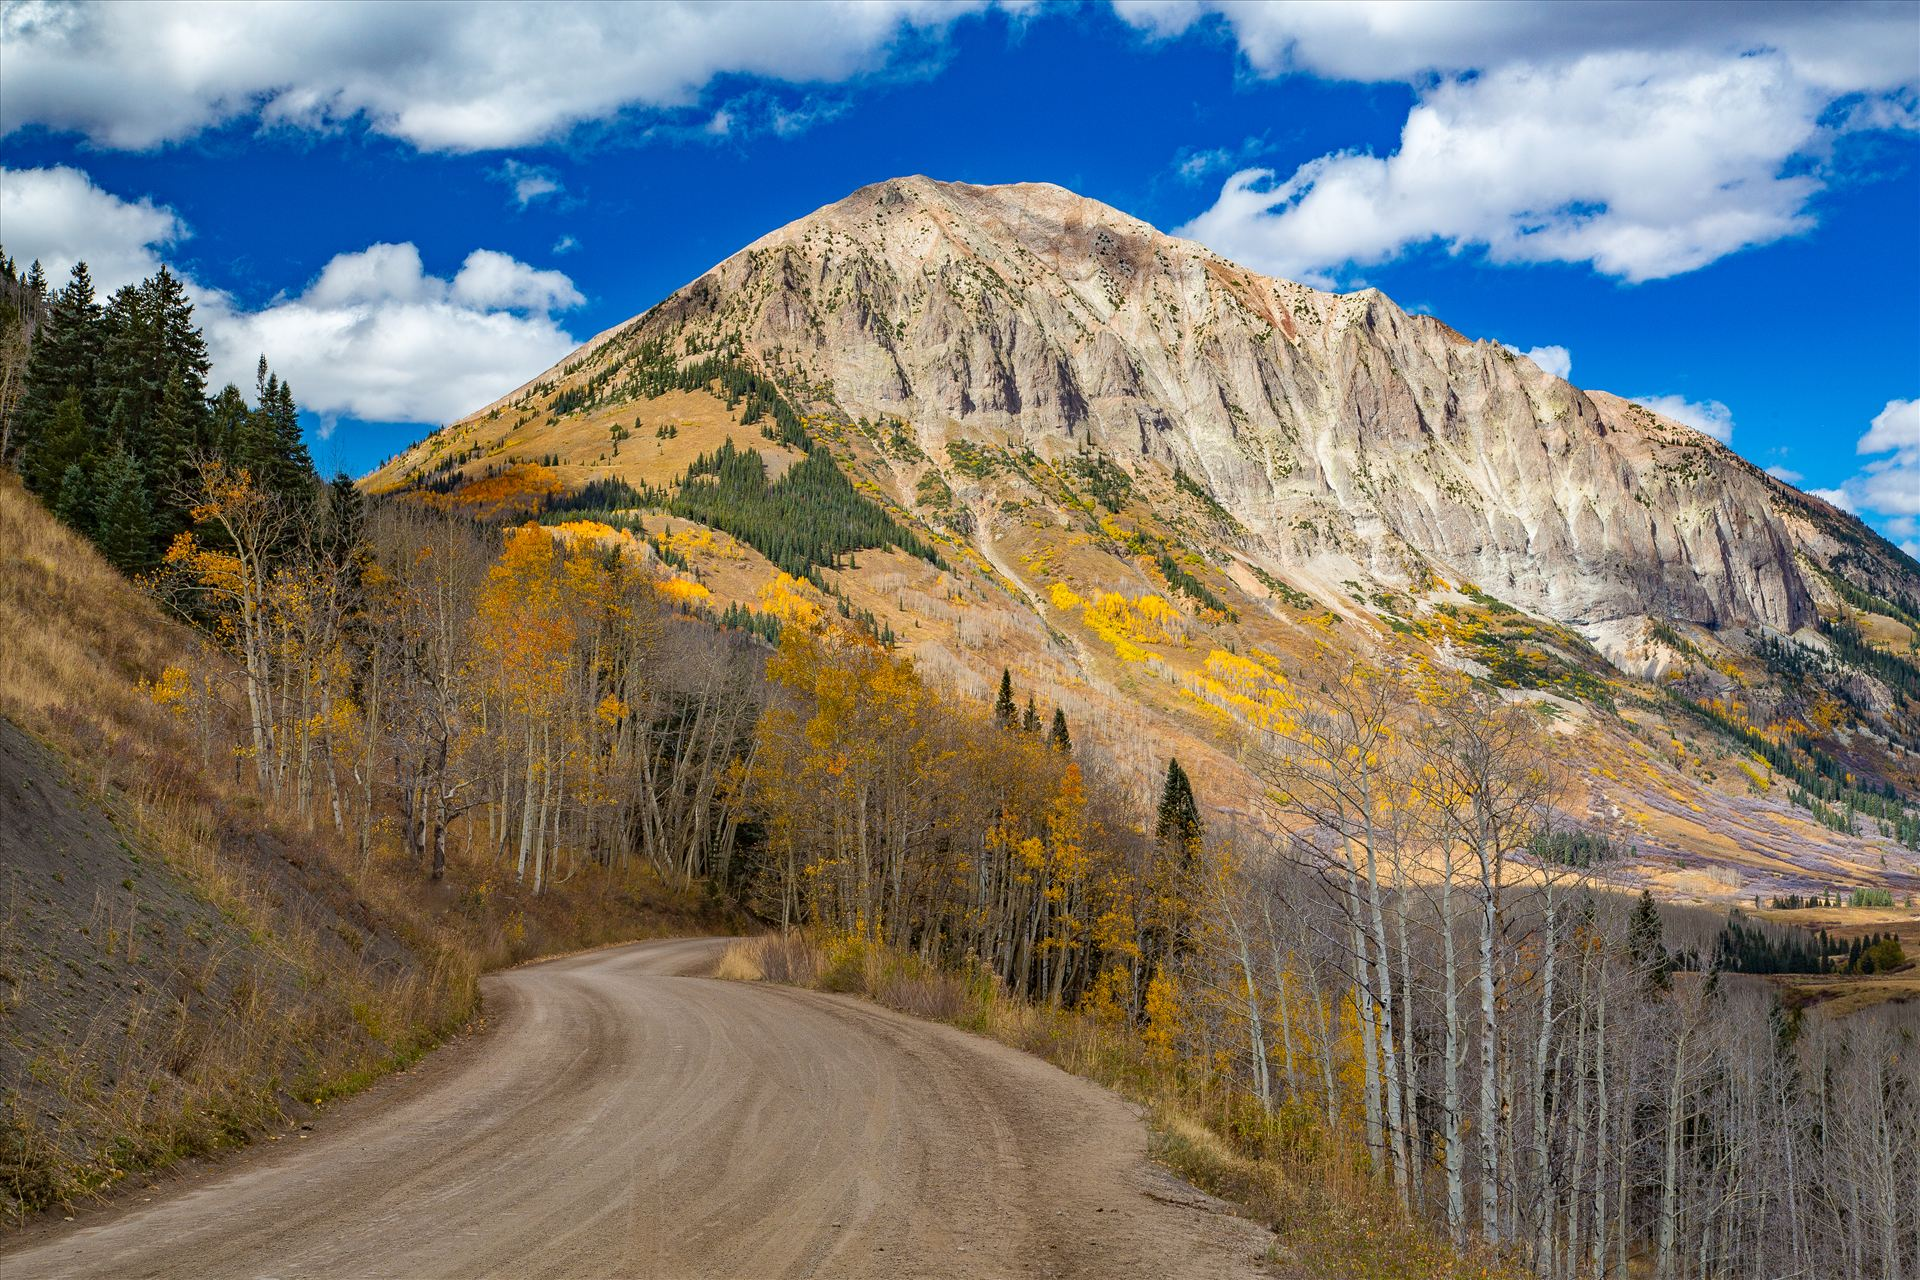 Gothic Road 2 - The view from Gothic Road heading north of Mt Crested Butte in October. by Scott Smith Photos